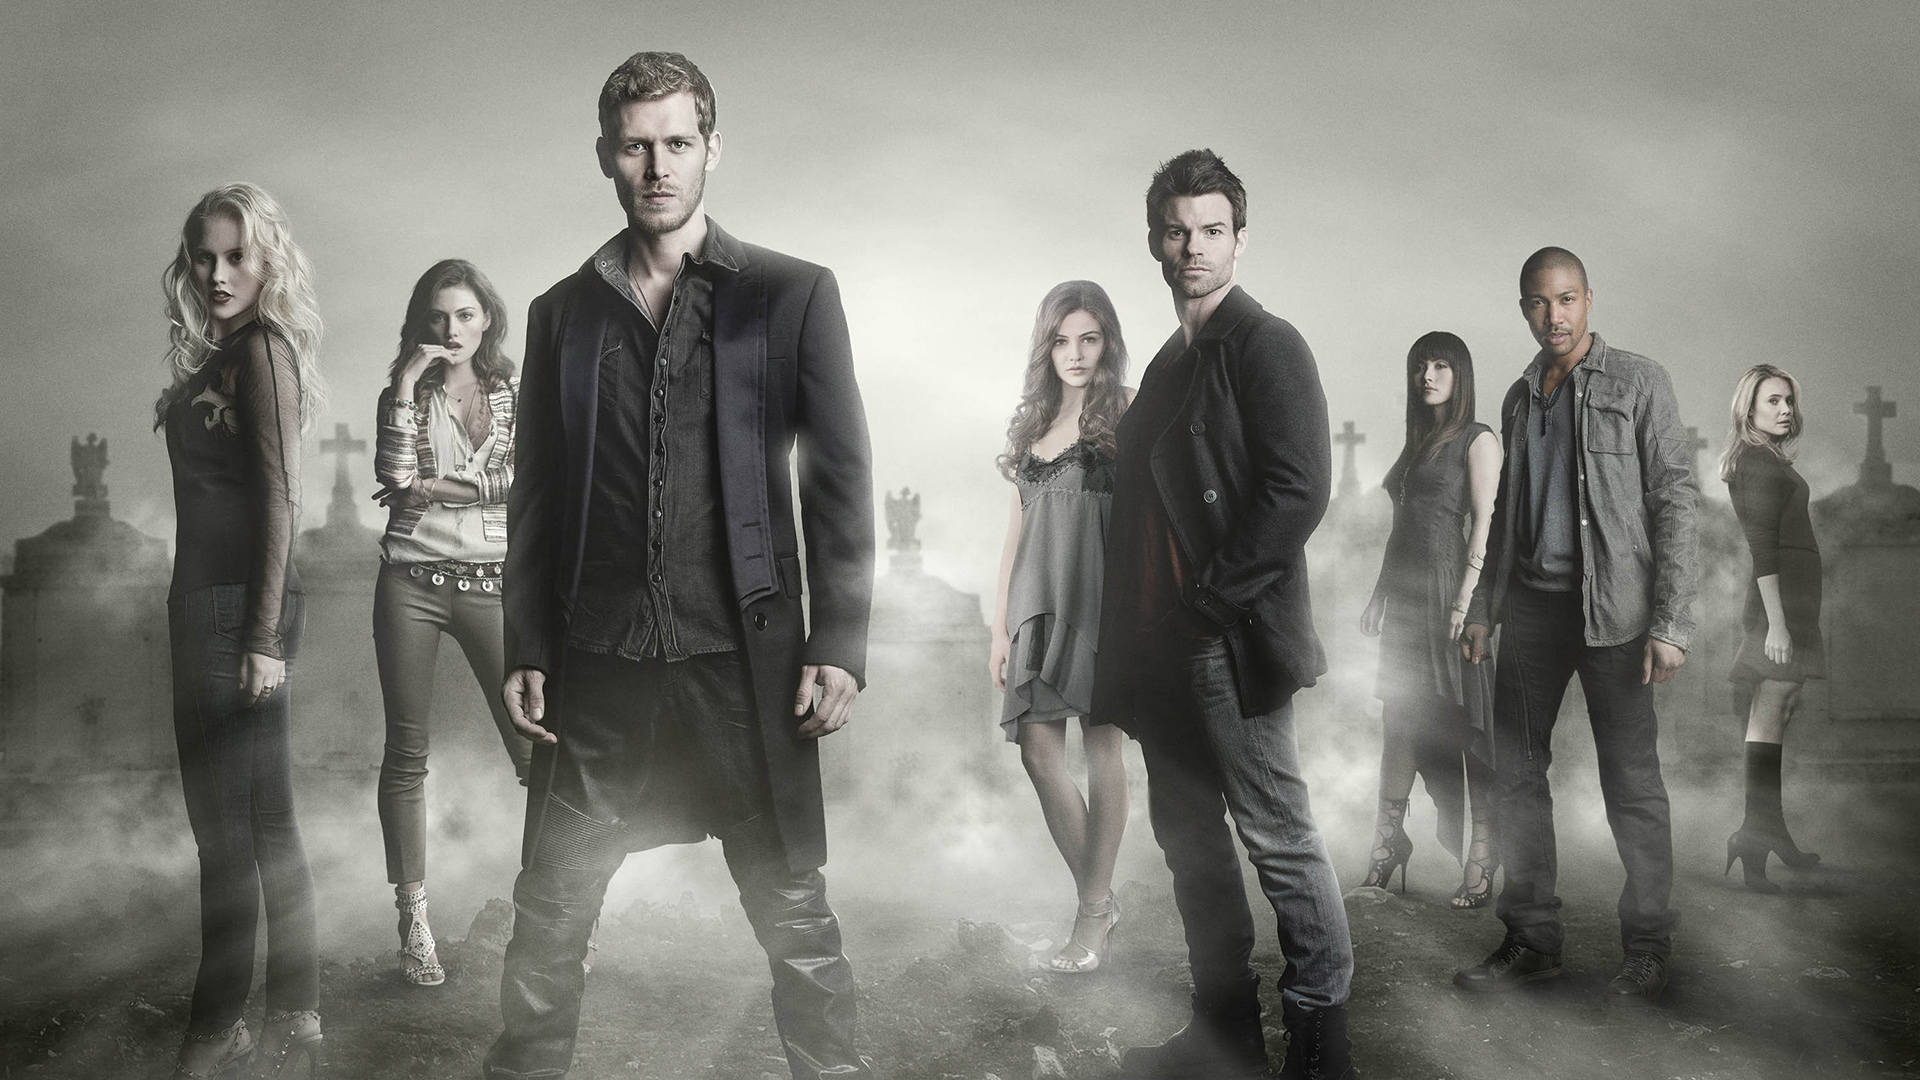 Daniel Gillies ready for leading part in The Originals